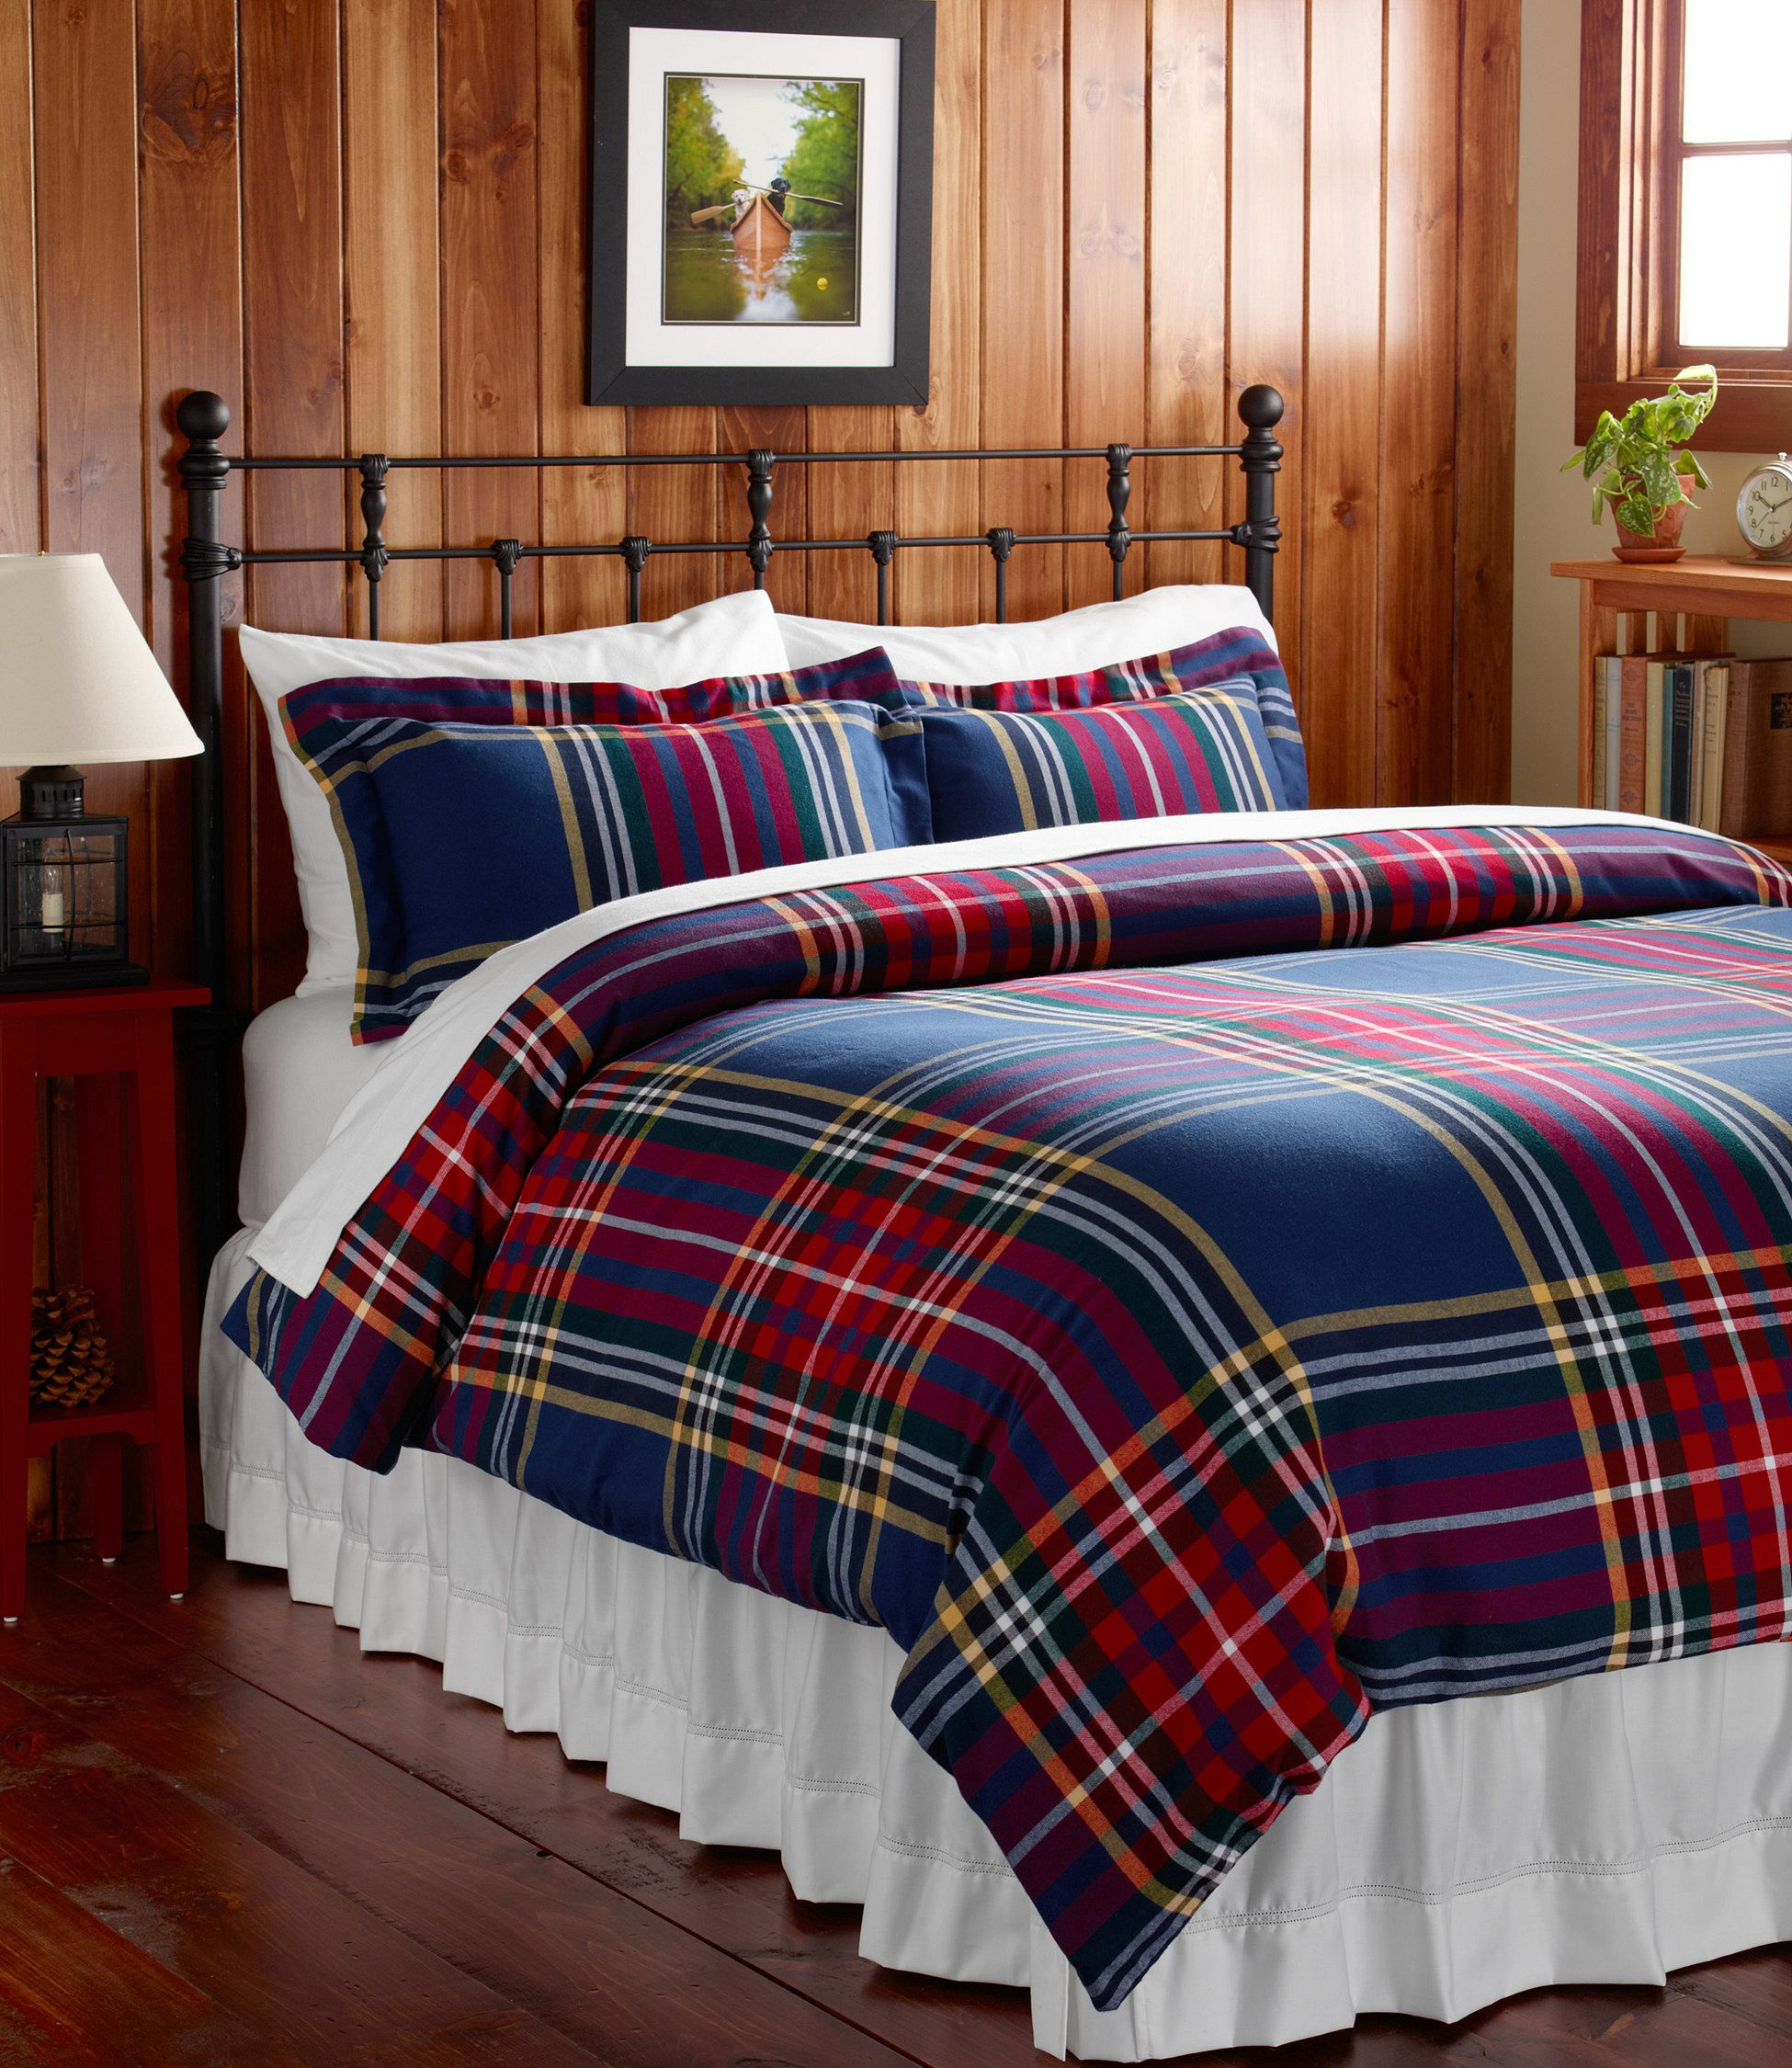 Ultrasoft comfort flannel comforter cover plaid comforter covers free shipping at l l bean